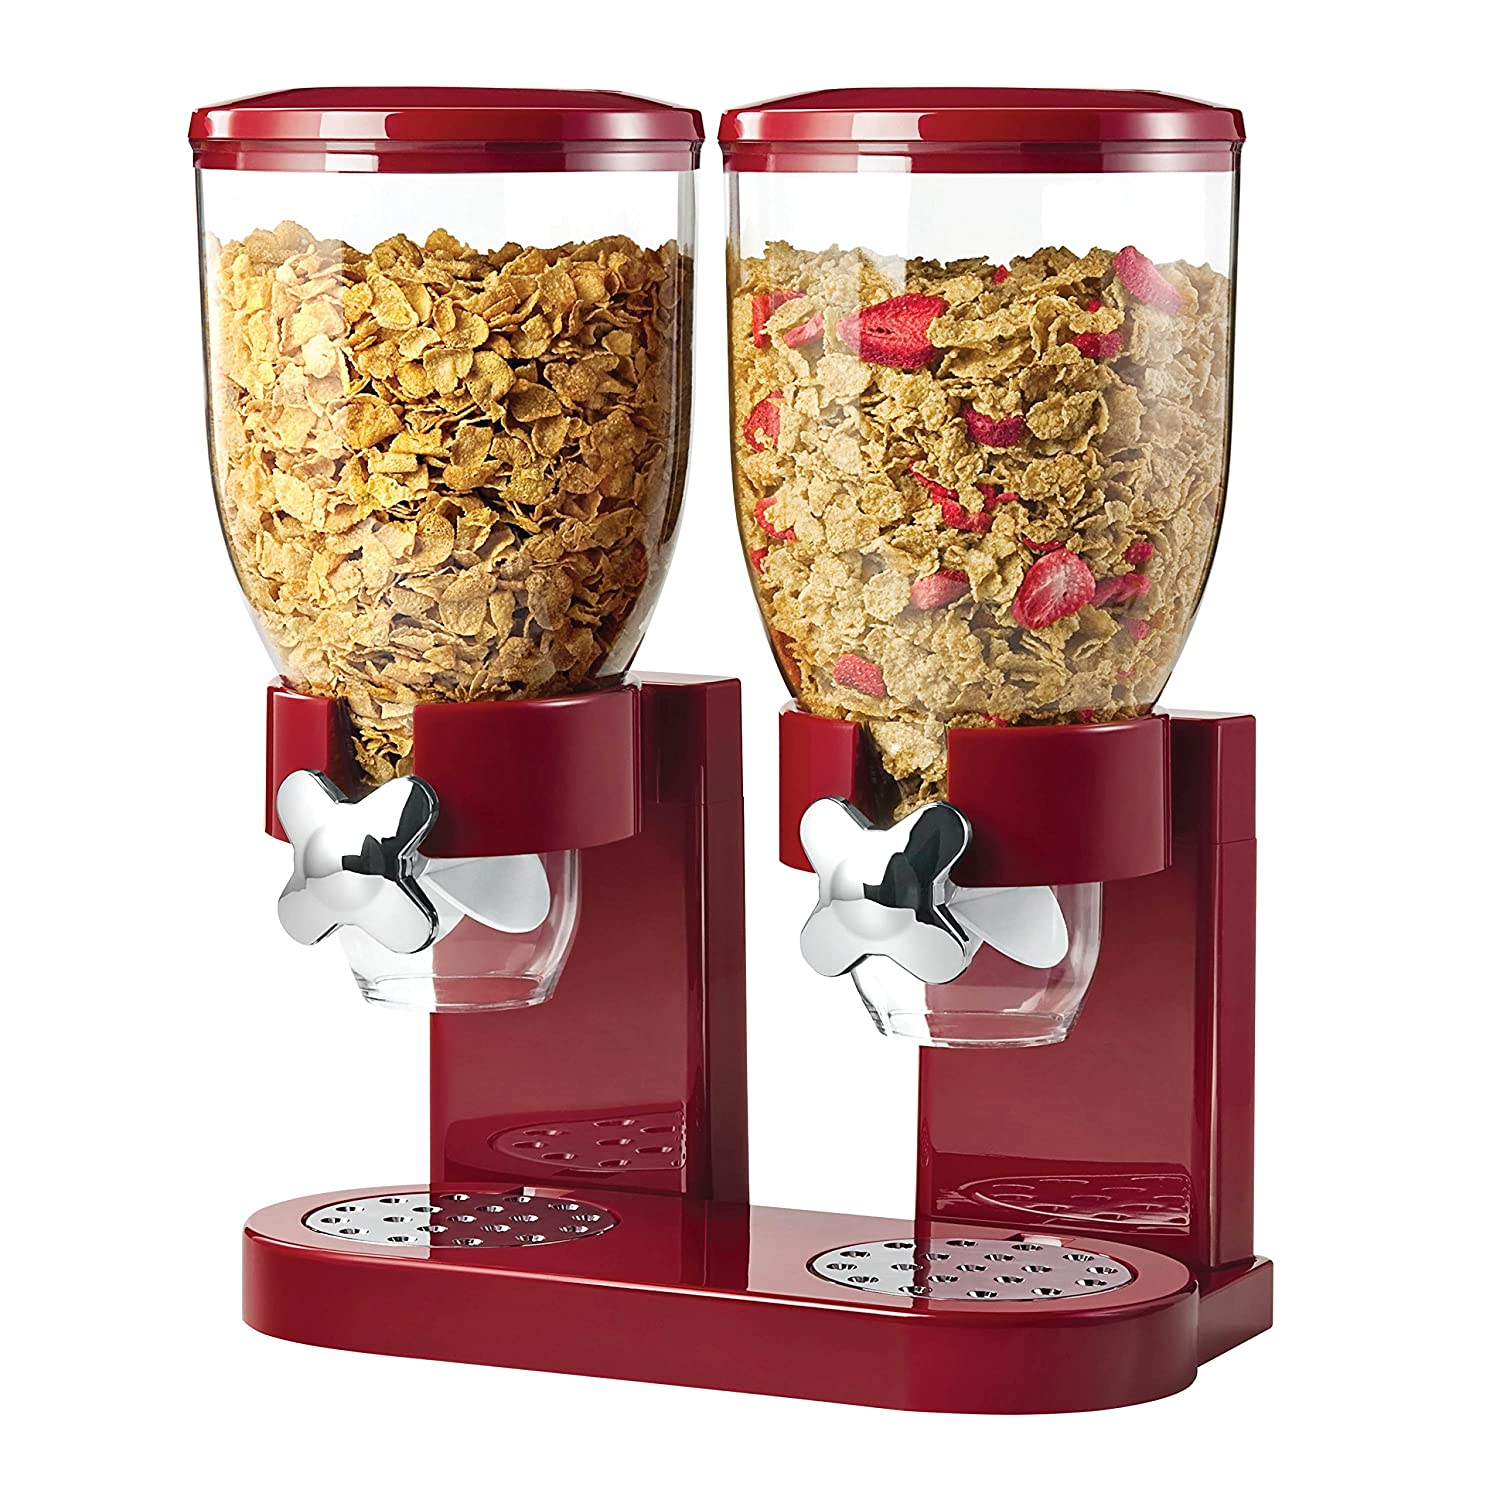 Zevro KCH-06125/GAT203 Indispensable Dry Food Dispenser, Dual Control, Red/Chrome Honey-Can-Do